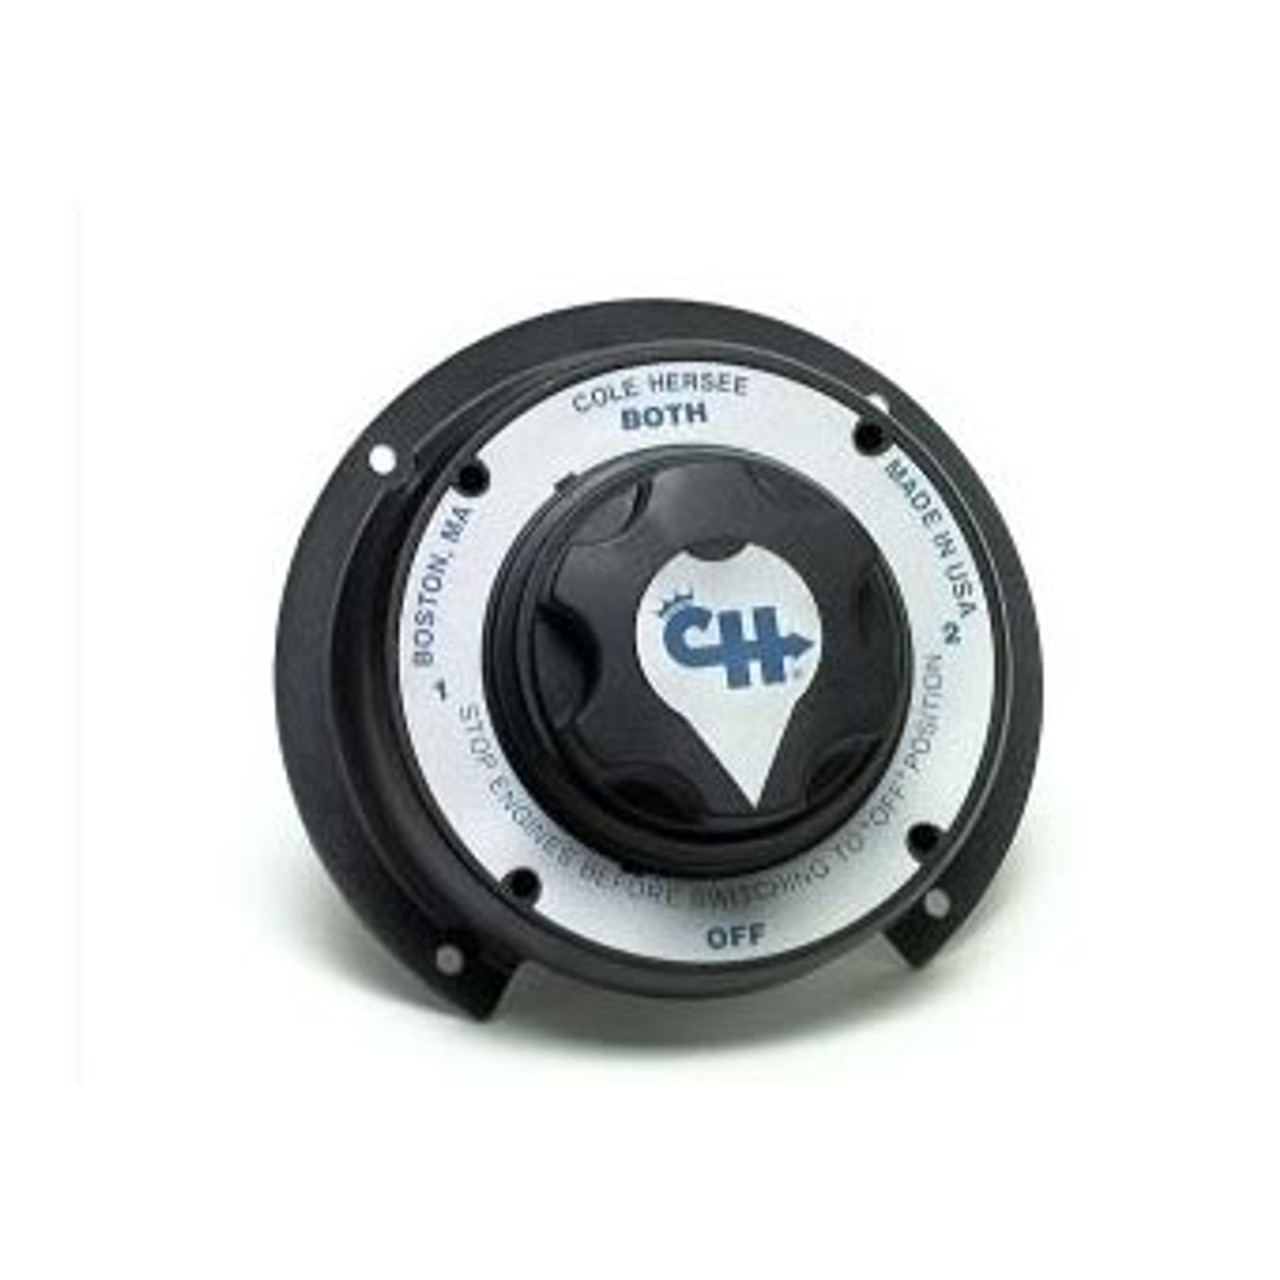 BAT. MARINE SELECT-DISC. ON-OFF CORROSION RESIST.